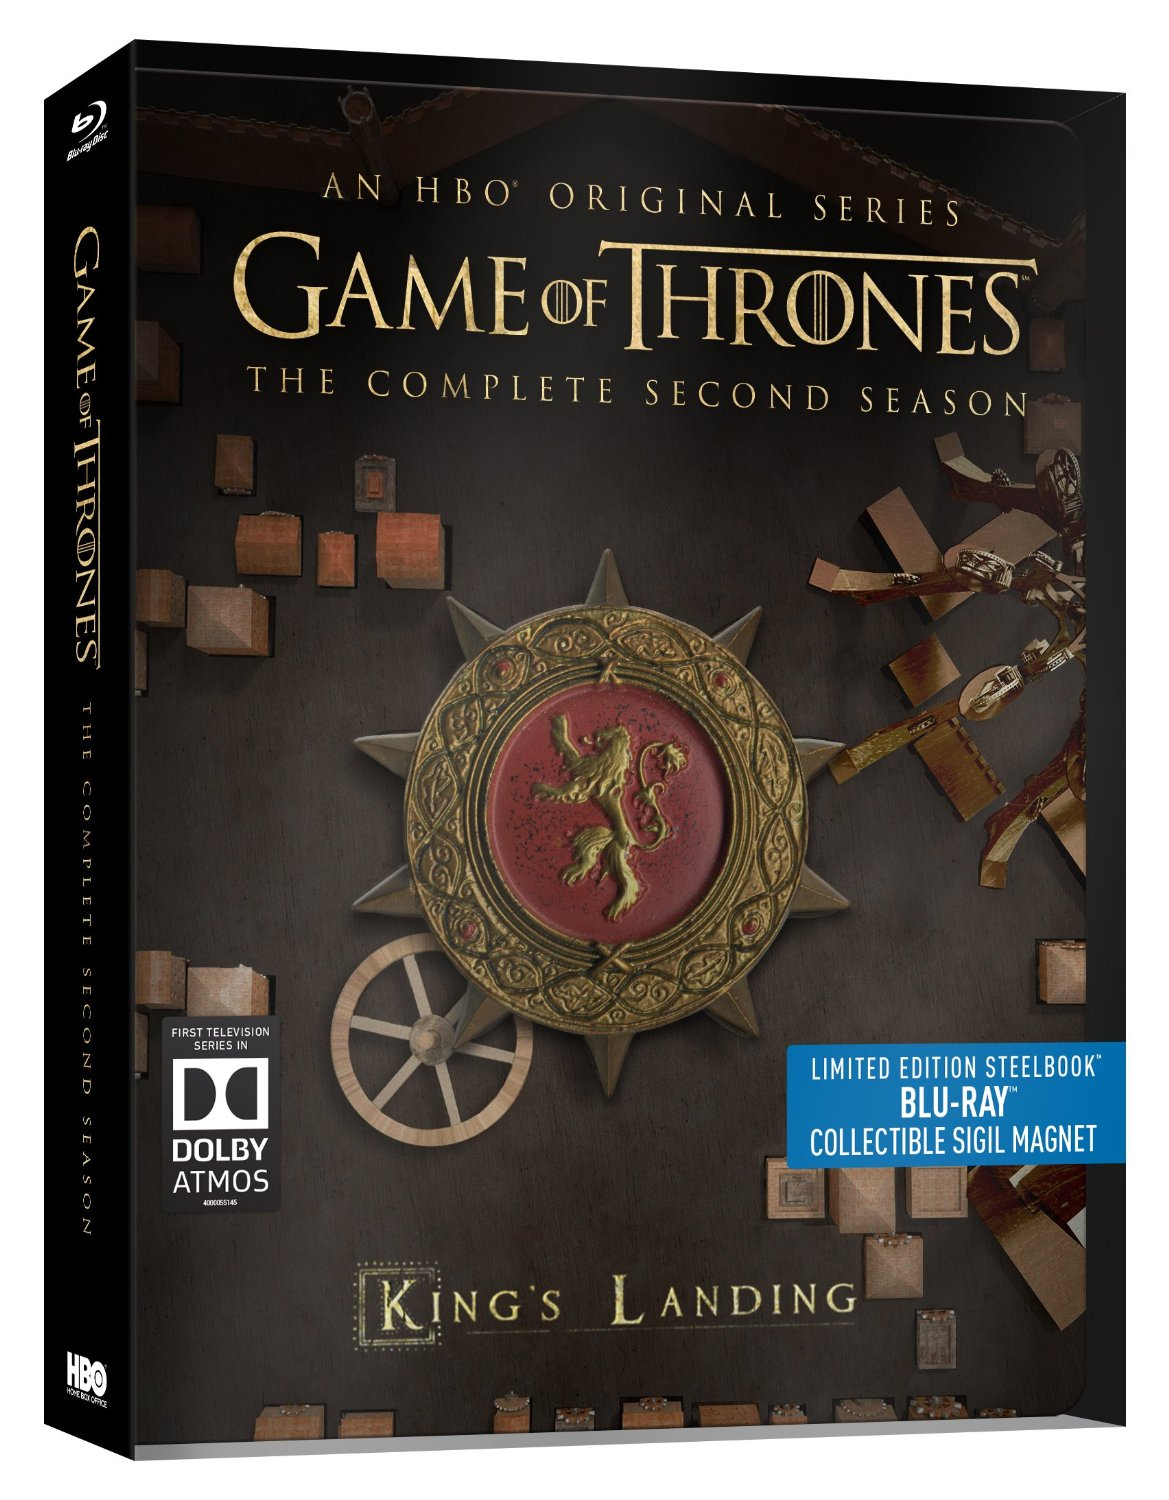 Game of Thrones Segunda Temporada [Blu-ray] (2015)